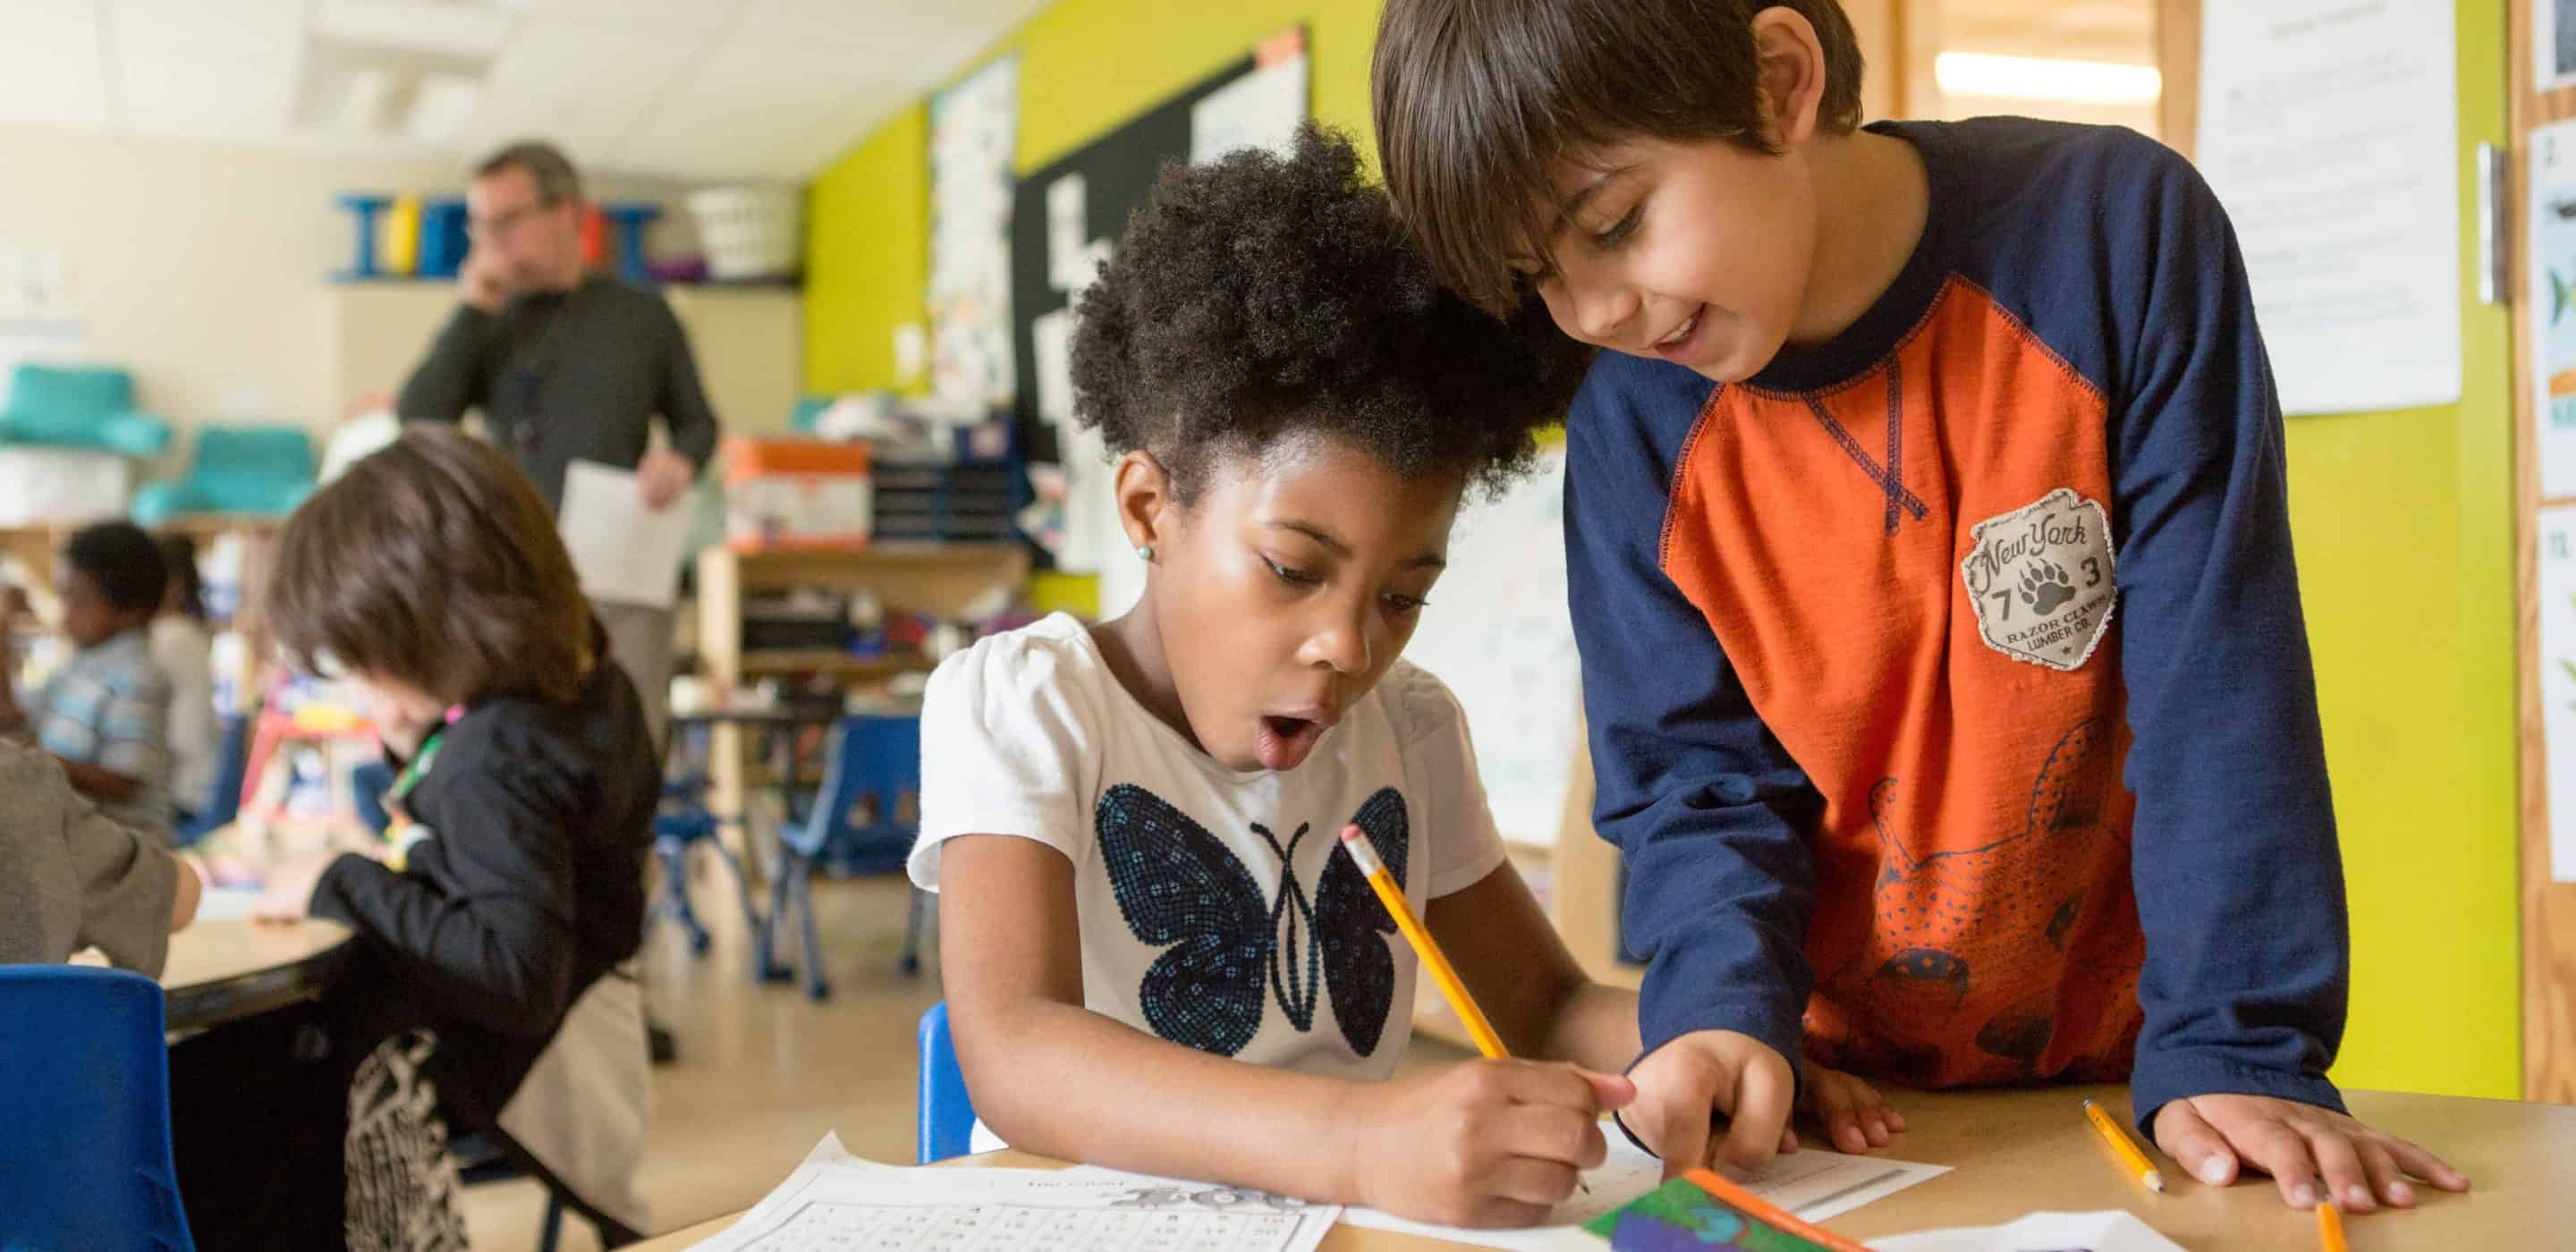 A boy and girl work together on an assignment